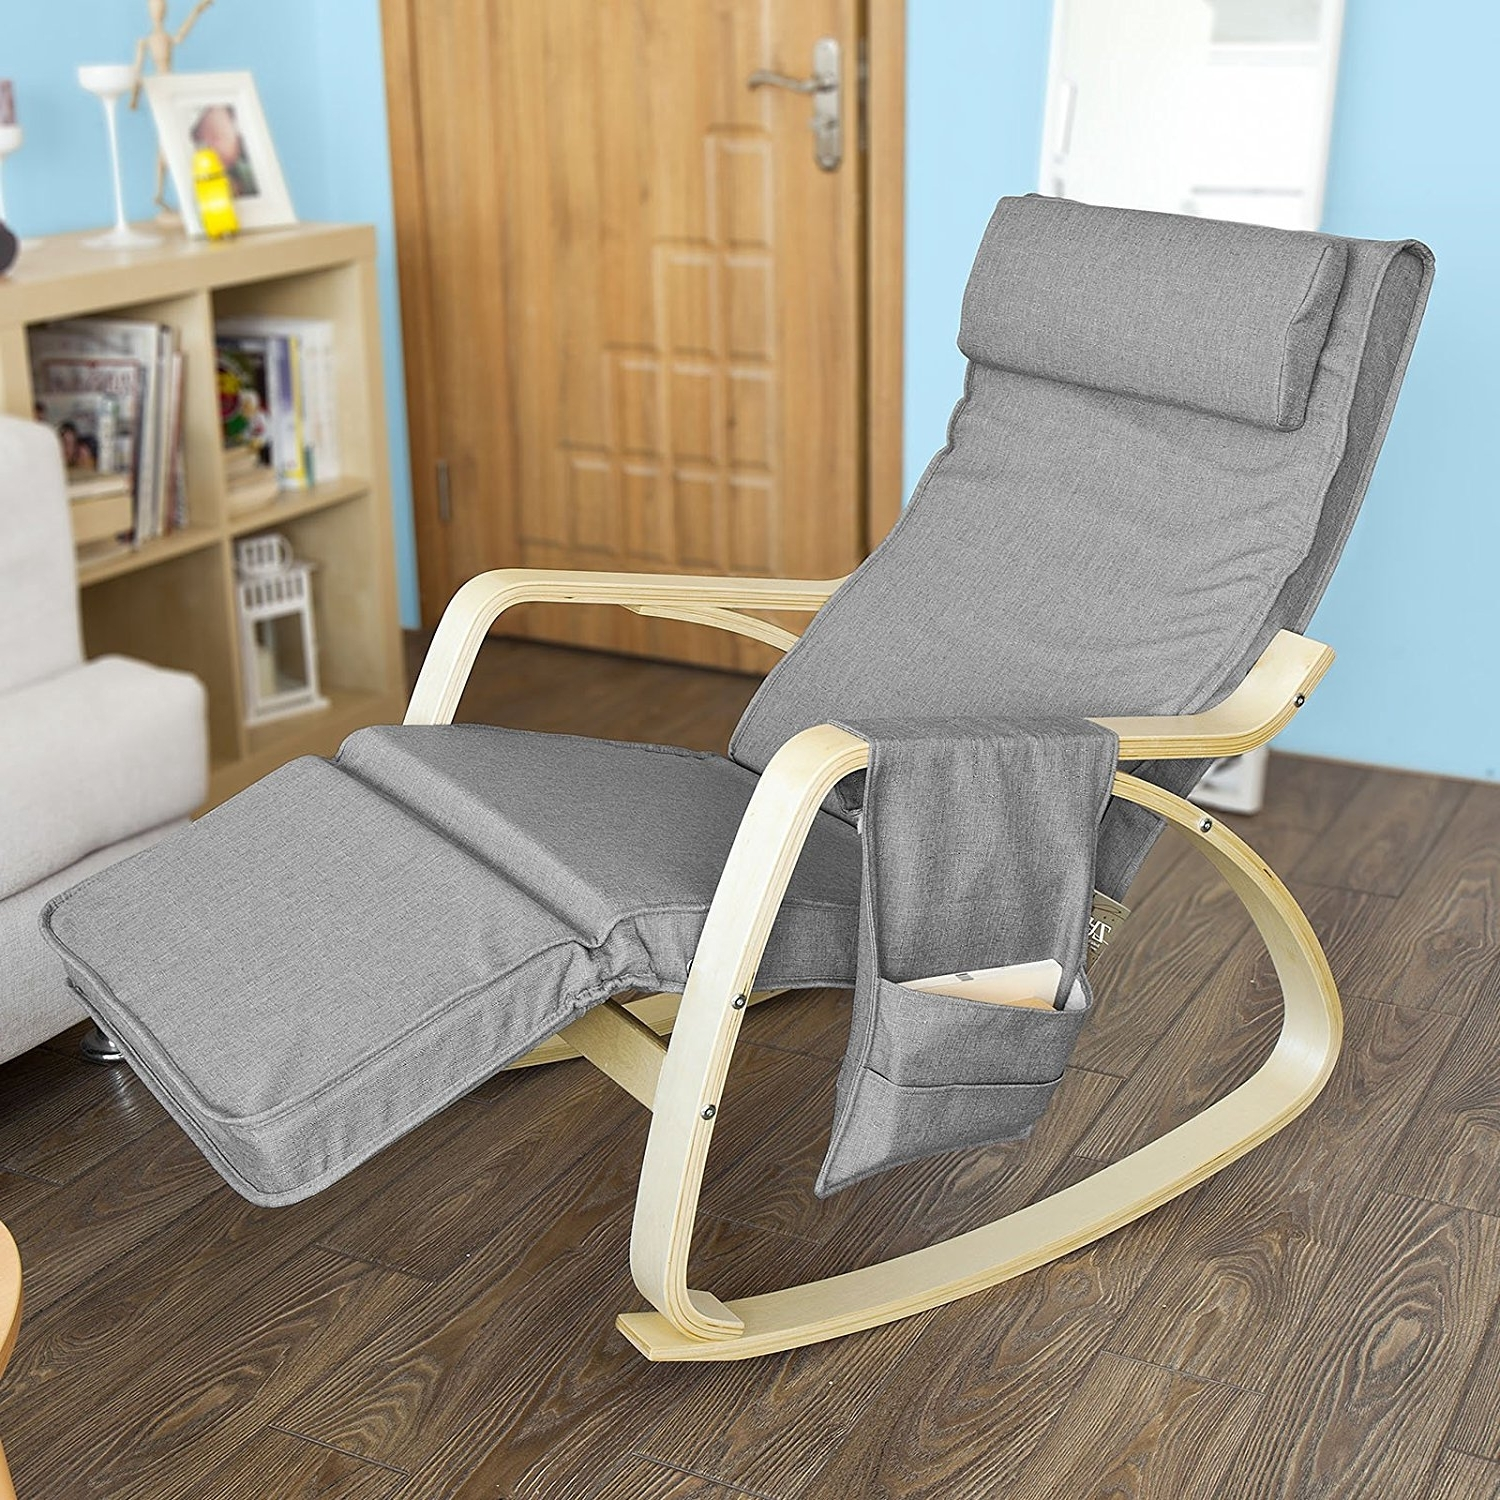 Most Up To Date Rocking Chairs With Lumbar Support Inside Rock Away Back Pain Using Rocking Chairs/inversiontableplus (View 6 of 15)